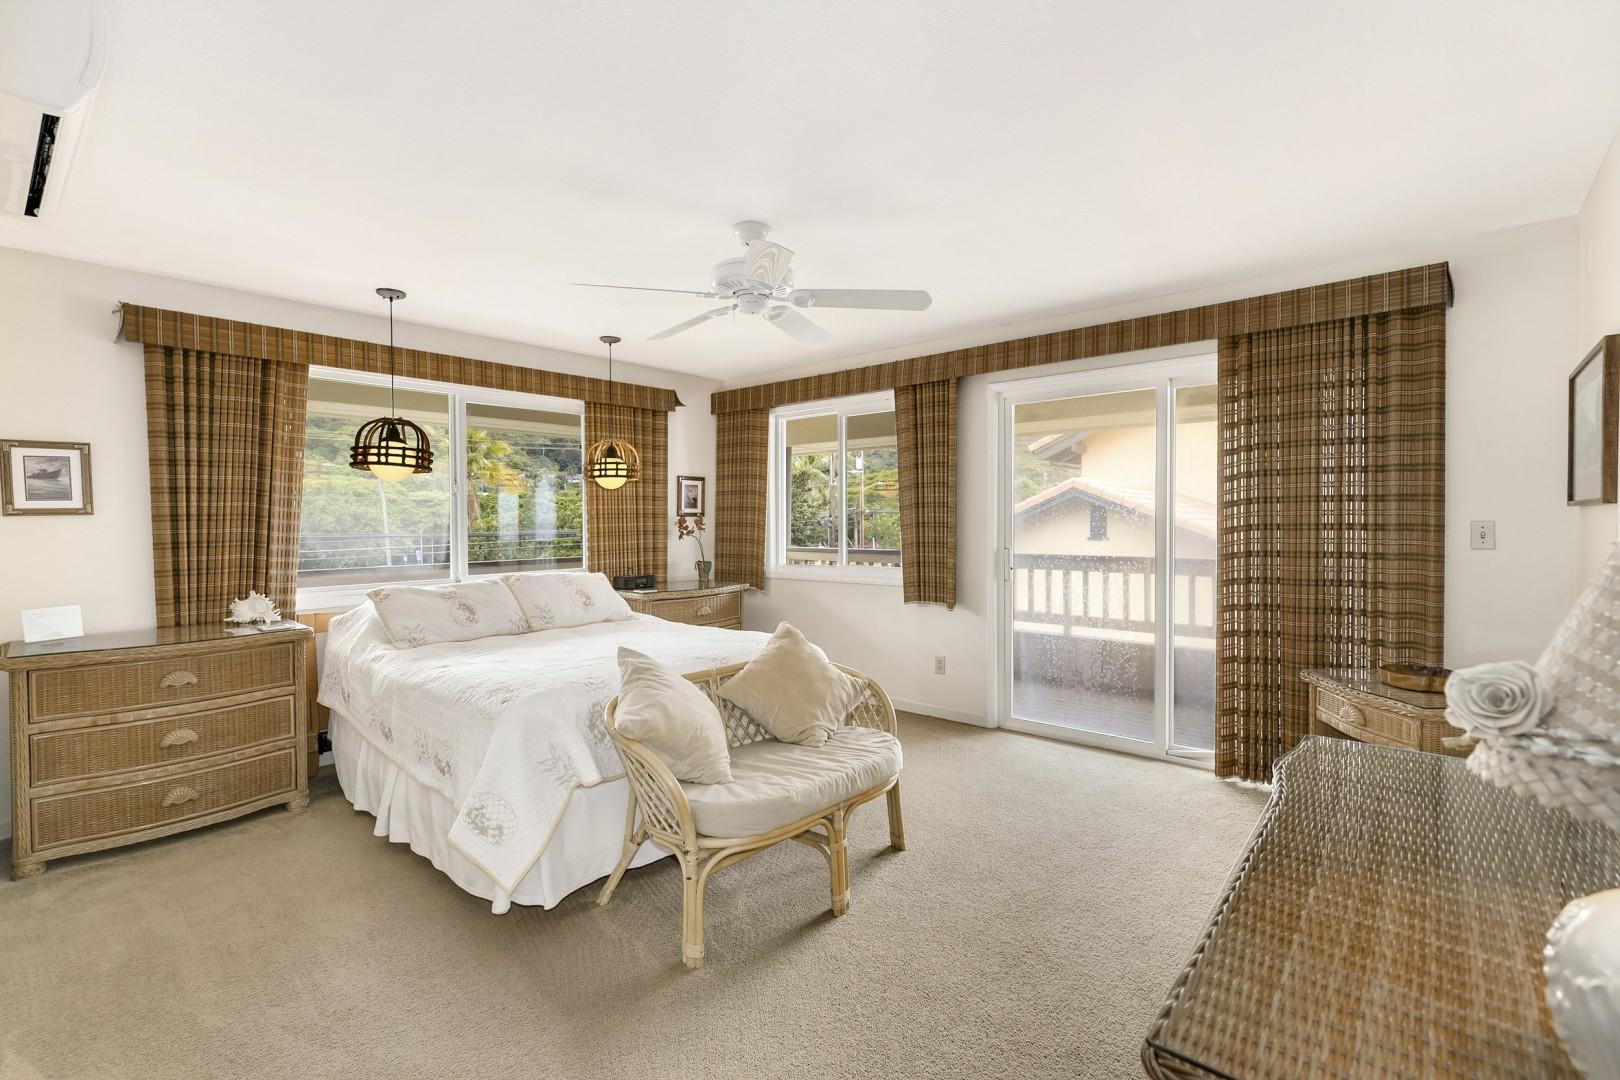 Master bedroom with ensuite bathroom access, split AC, fan, dresser, queen bed, and lanai access.